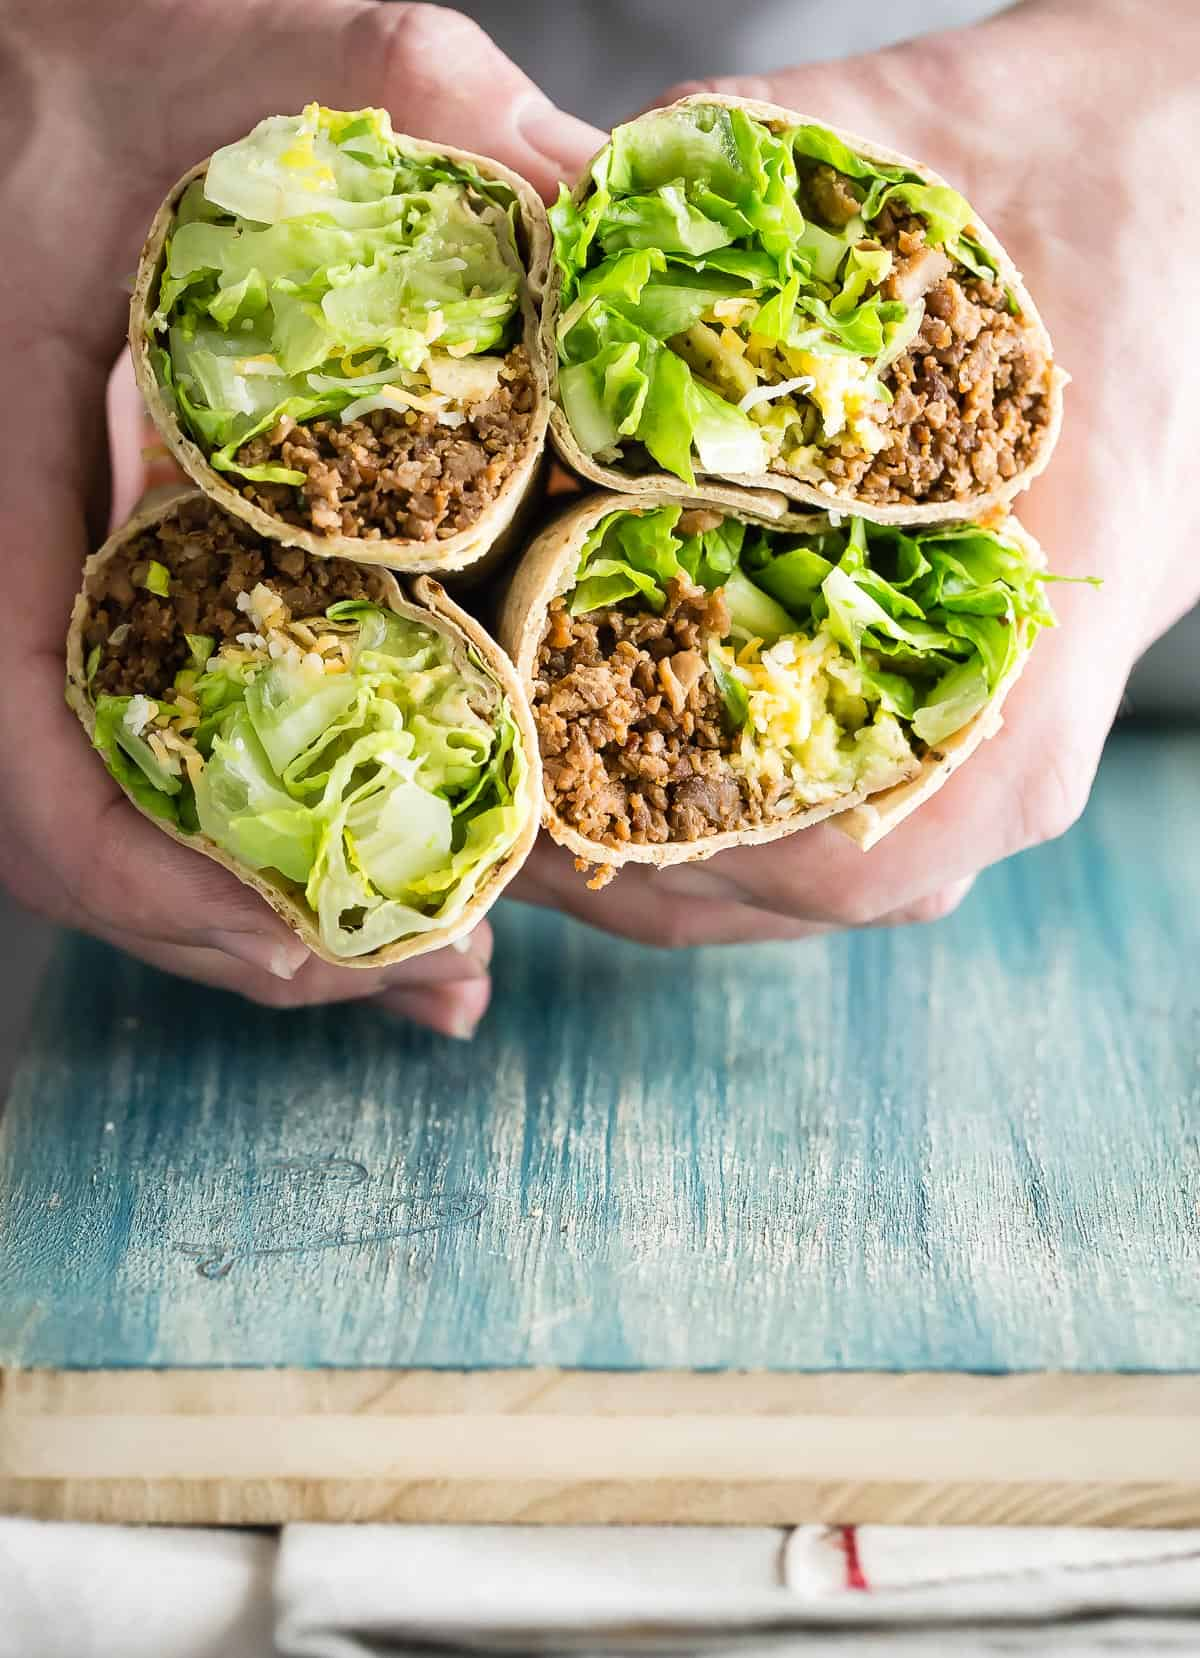 Everyones favorite taco flavors wrapped in a Flatout Sea Salt and Black Pepper wrap